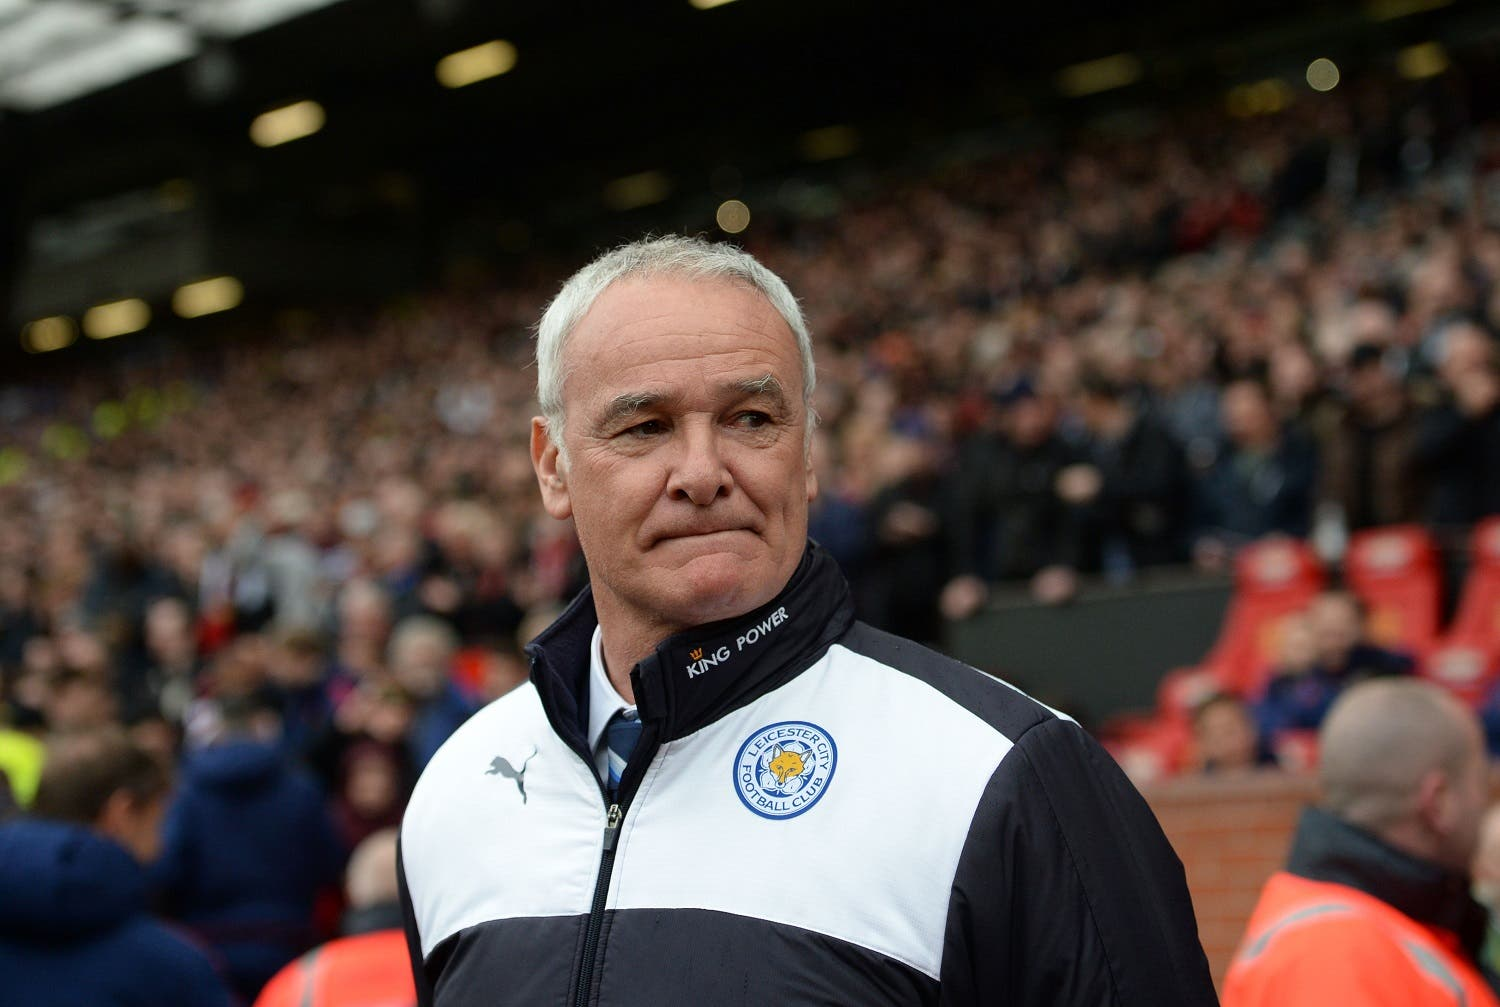 Leicester City's Italian manager Claudio Ranieri arrives for the English Premier League football match between Manchester United and Leicester City at Old Trafford in Manchester, north west England, on May 1, 2016. RESTRICTED TO EDITORIAL USE. No use with unauthorized audio, video, data, fixture lists, club/league logos or 'live' services. Online in-match use limited to 75 images, no video emulation. No use in betting, games or single club/league/player publications.